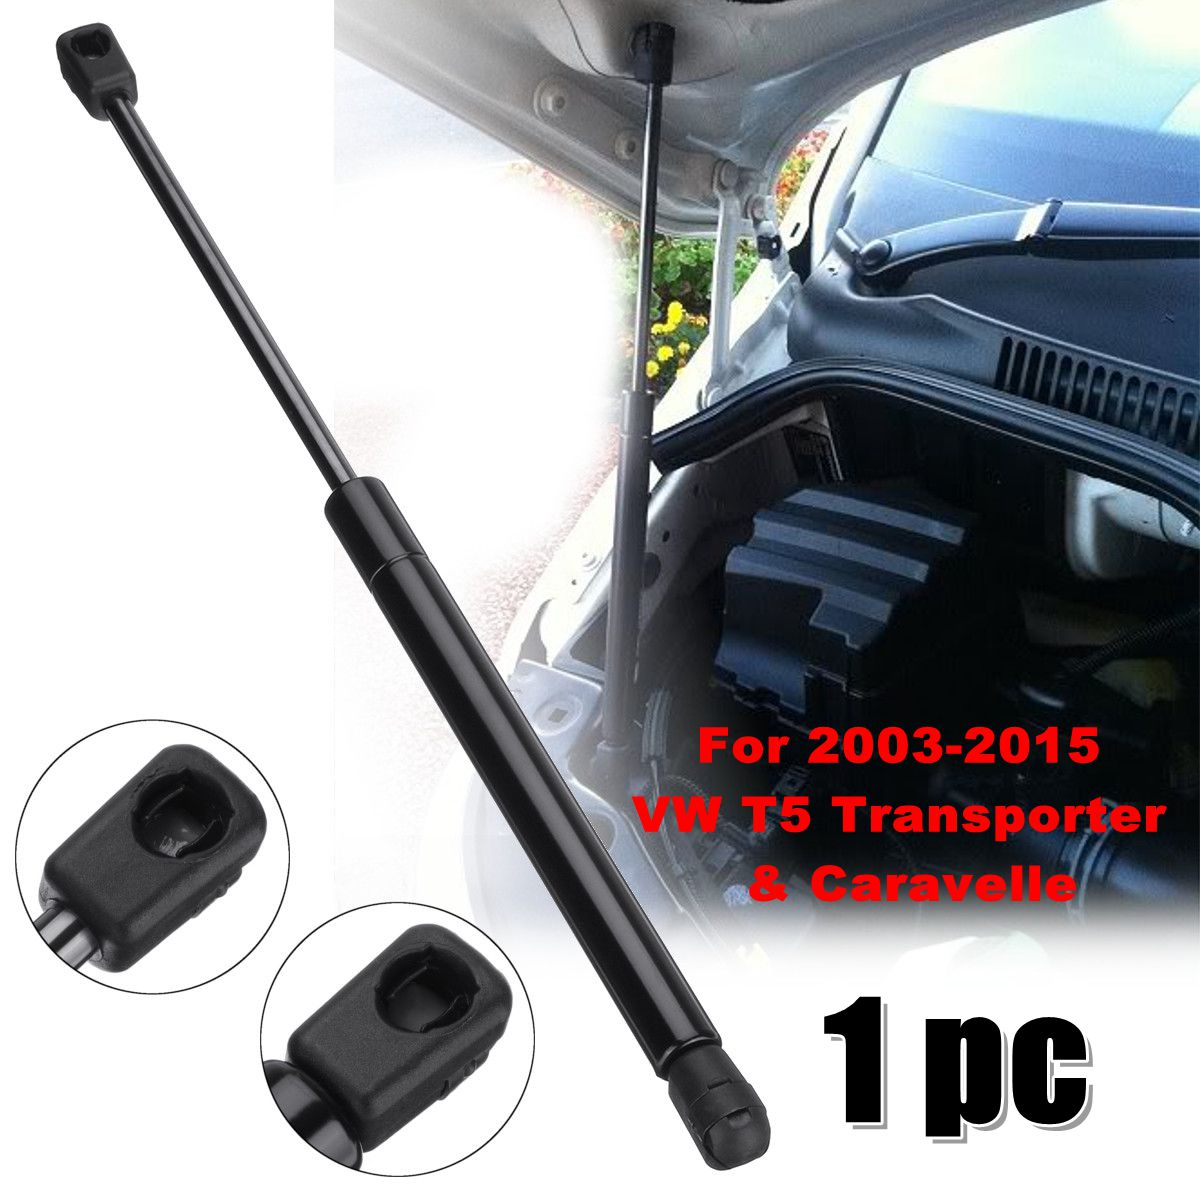 1Pc Front Bonnet Hood Support Gas Strut For VW T5 Transporter & Caravelle 2003-2015 7E0823359 for vw transporter caravelle 1990 2003 brand new 701837205 front left outer door handle mechanism with keys